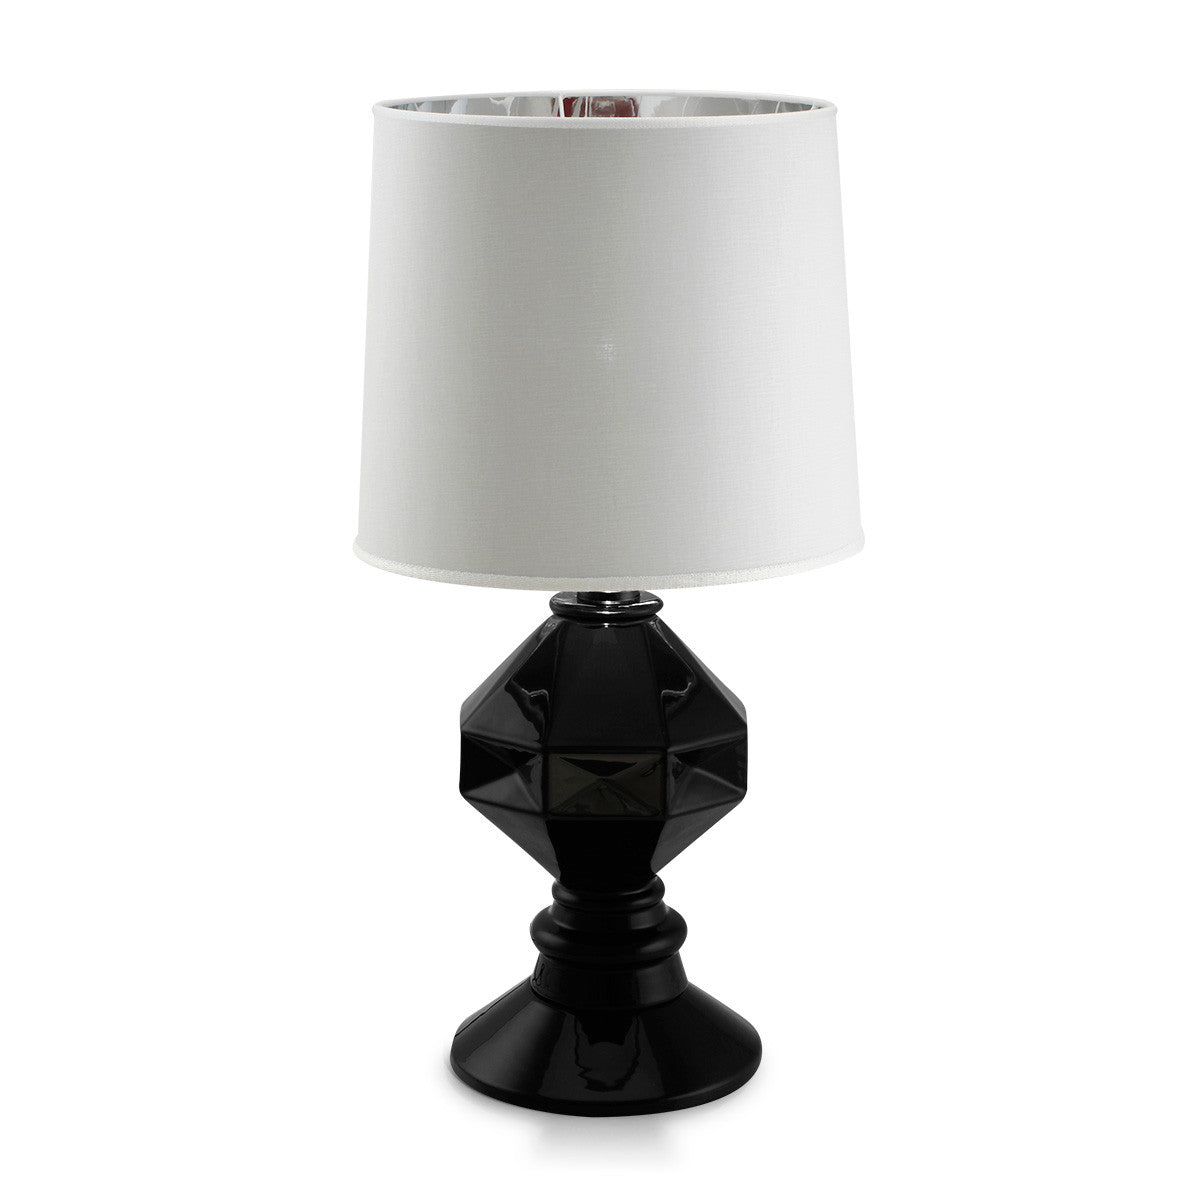 Stylish table lamps table | Mat black | Handmade Pottery